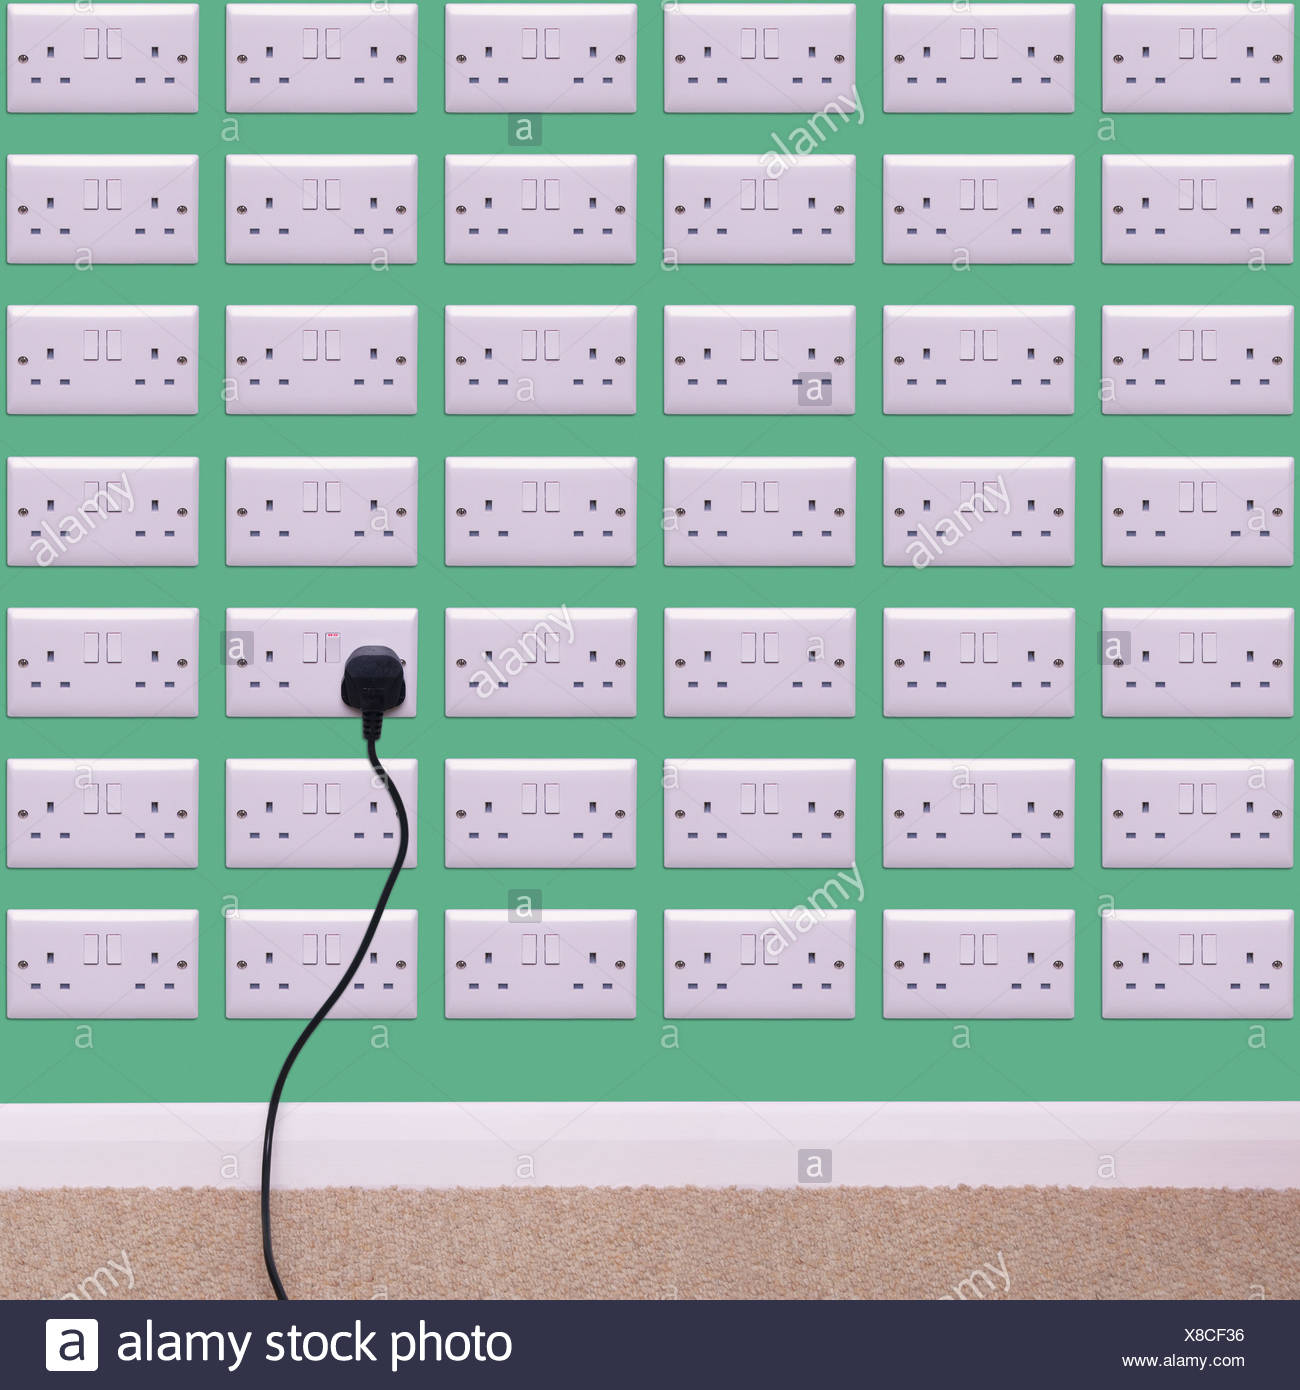 Electrical Sockets Stock Photos & Electrical Sockets Stock Images ...